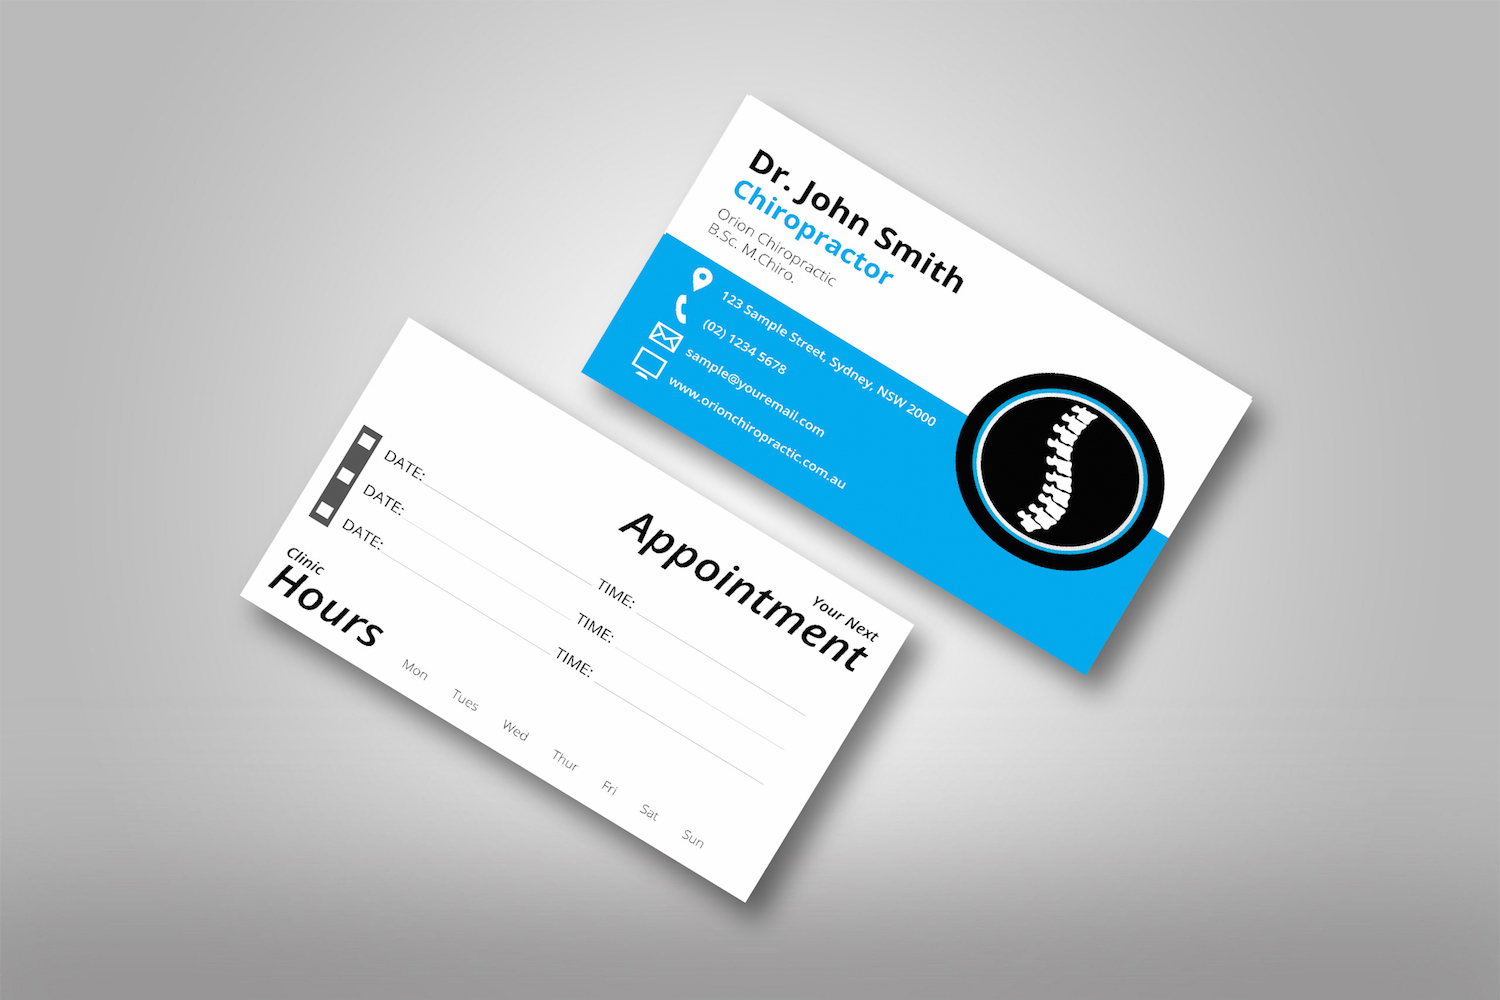 Classic Chiropractic Business Cards 2 - Orion Marketing